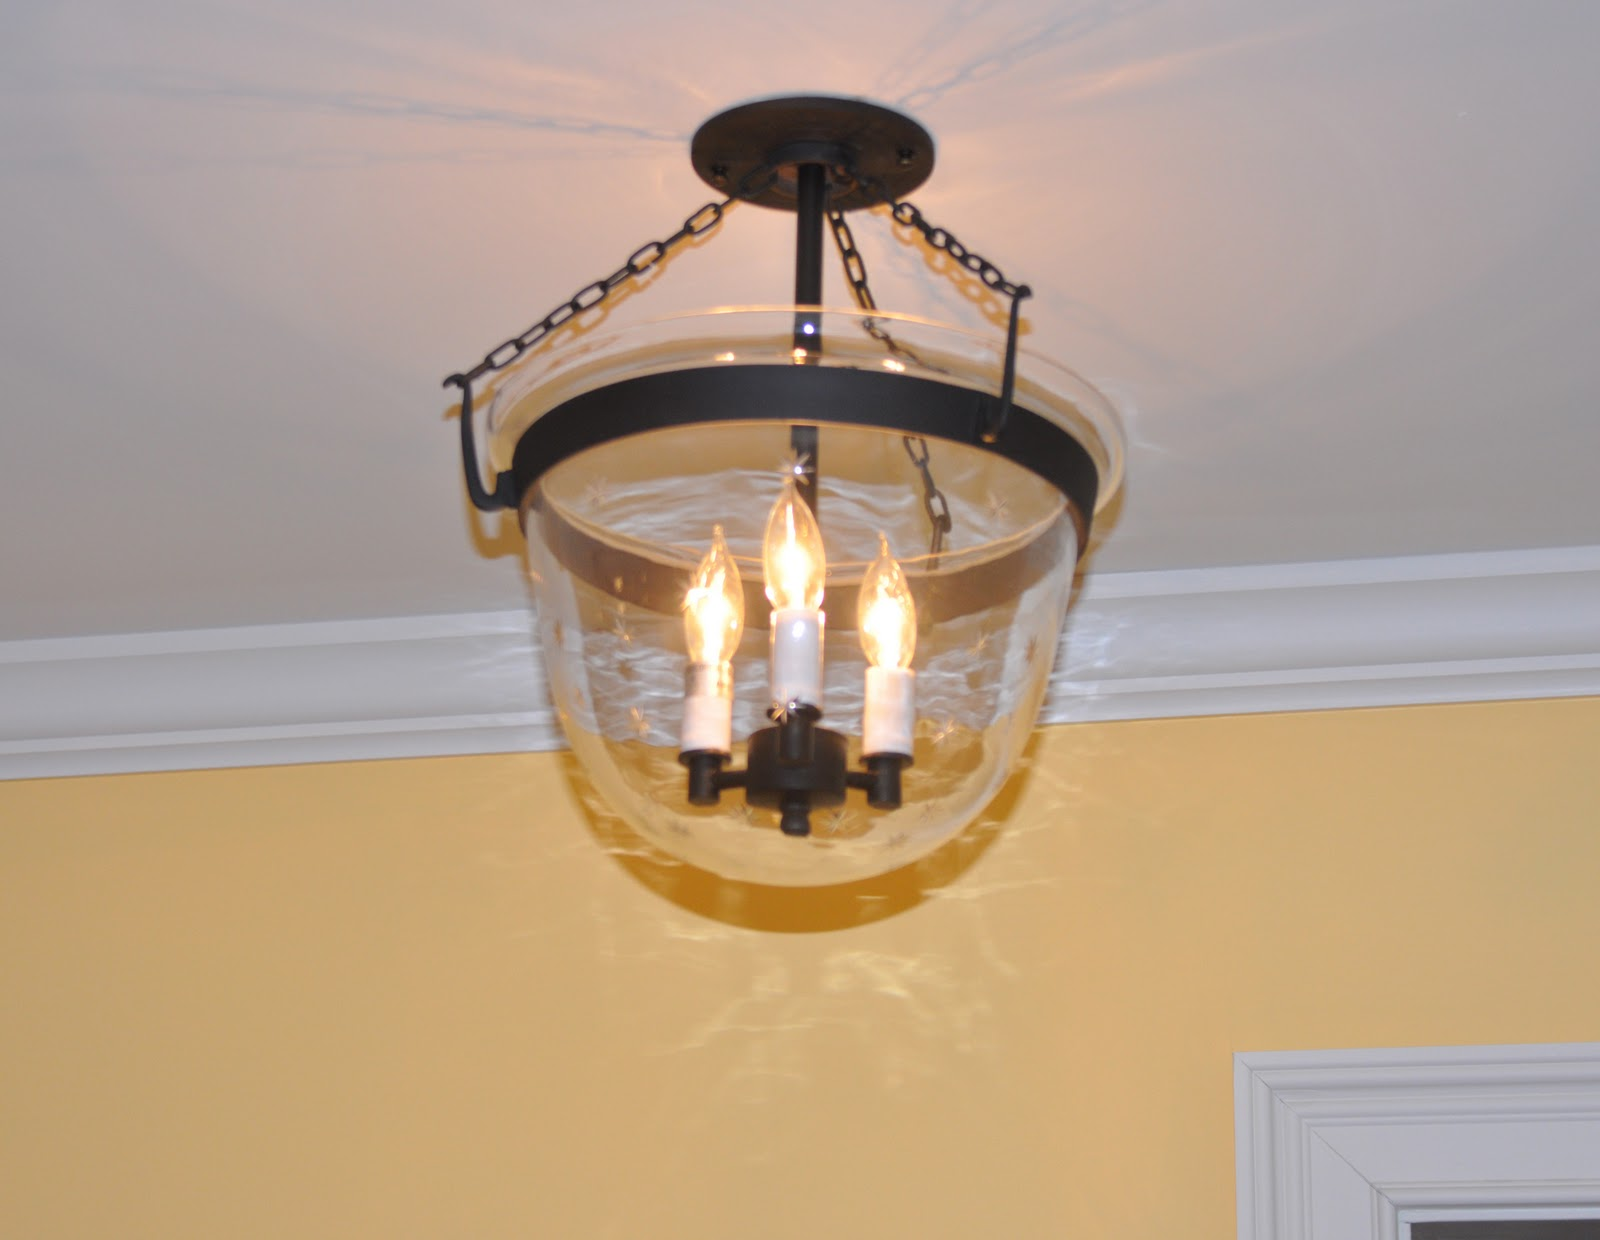 & JVI Designs Country Bell Jar with Stars Customer Install Photos